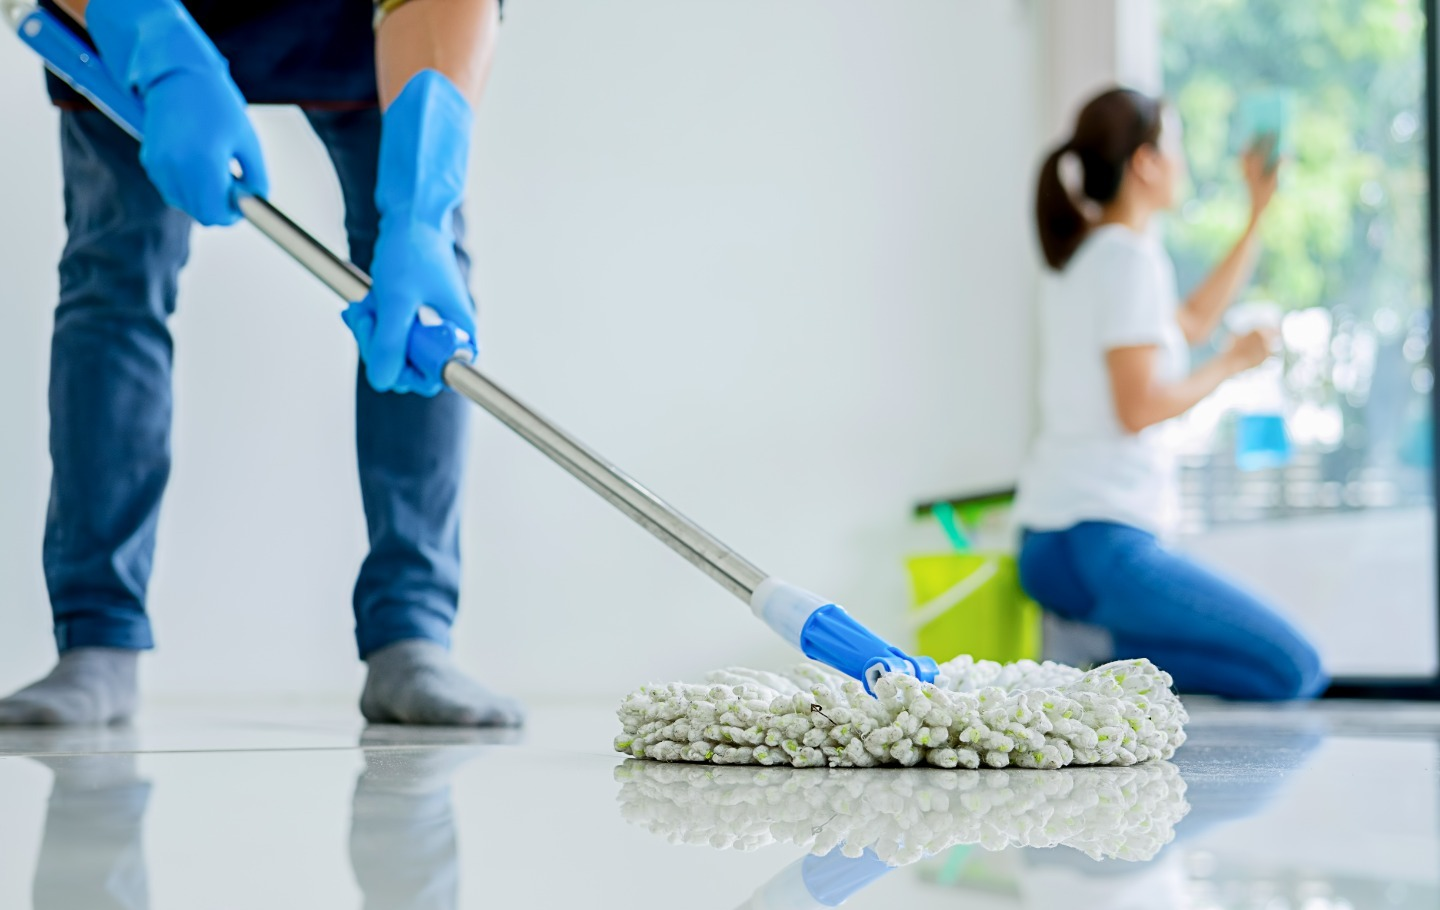 Traits to look for in a top rated cleaning service